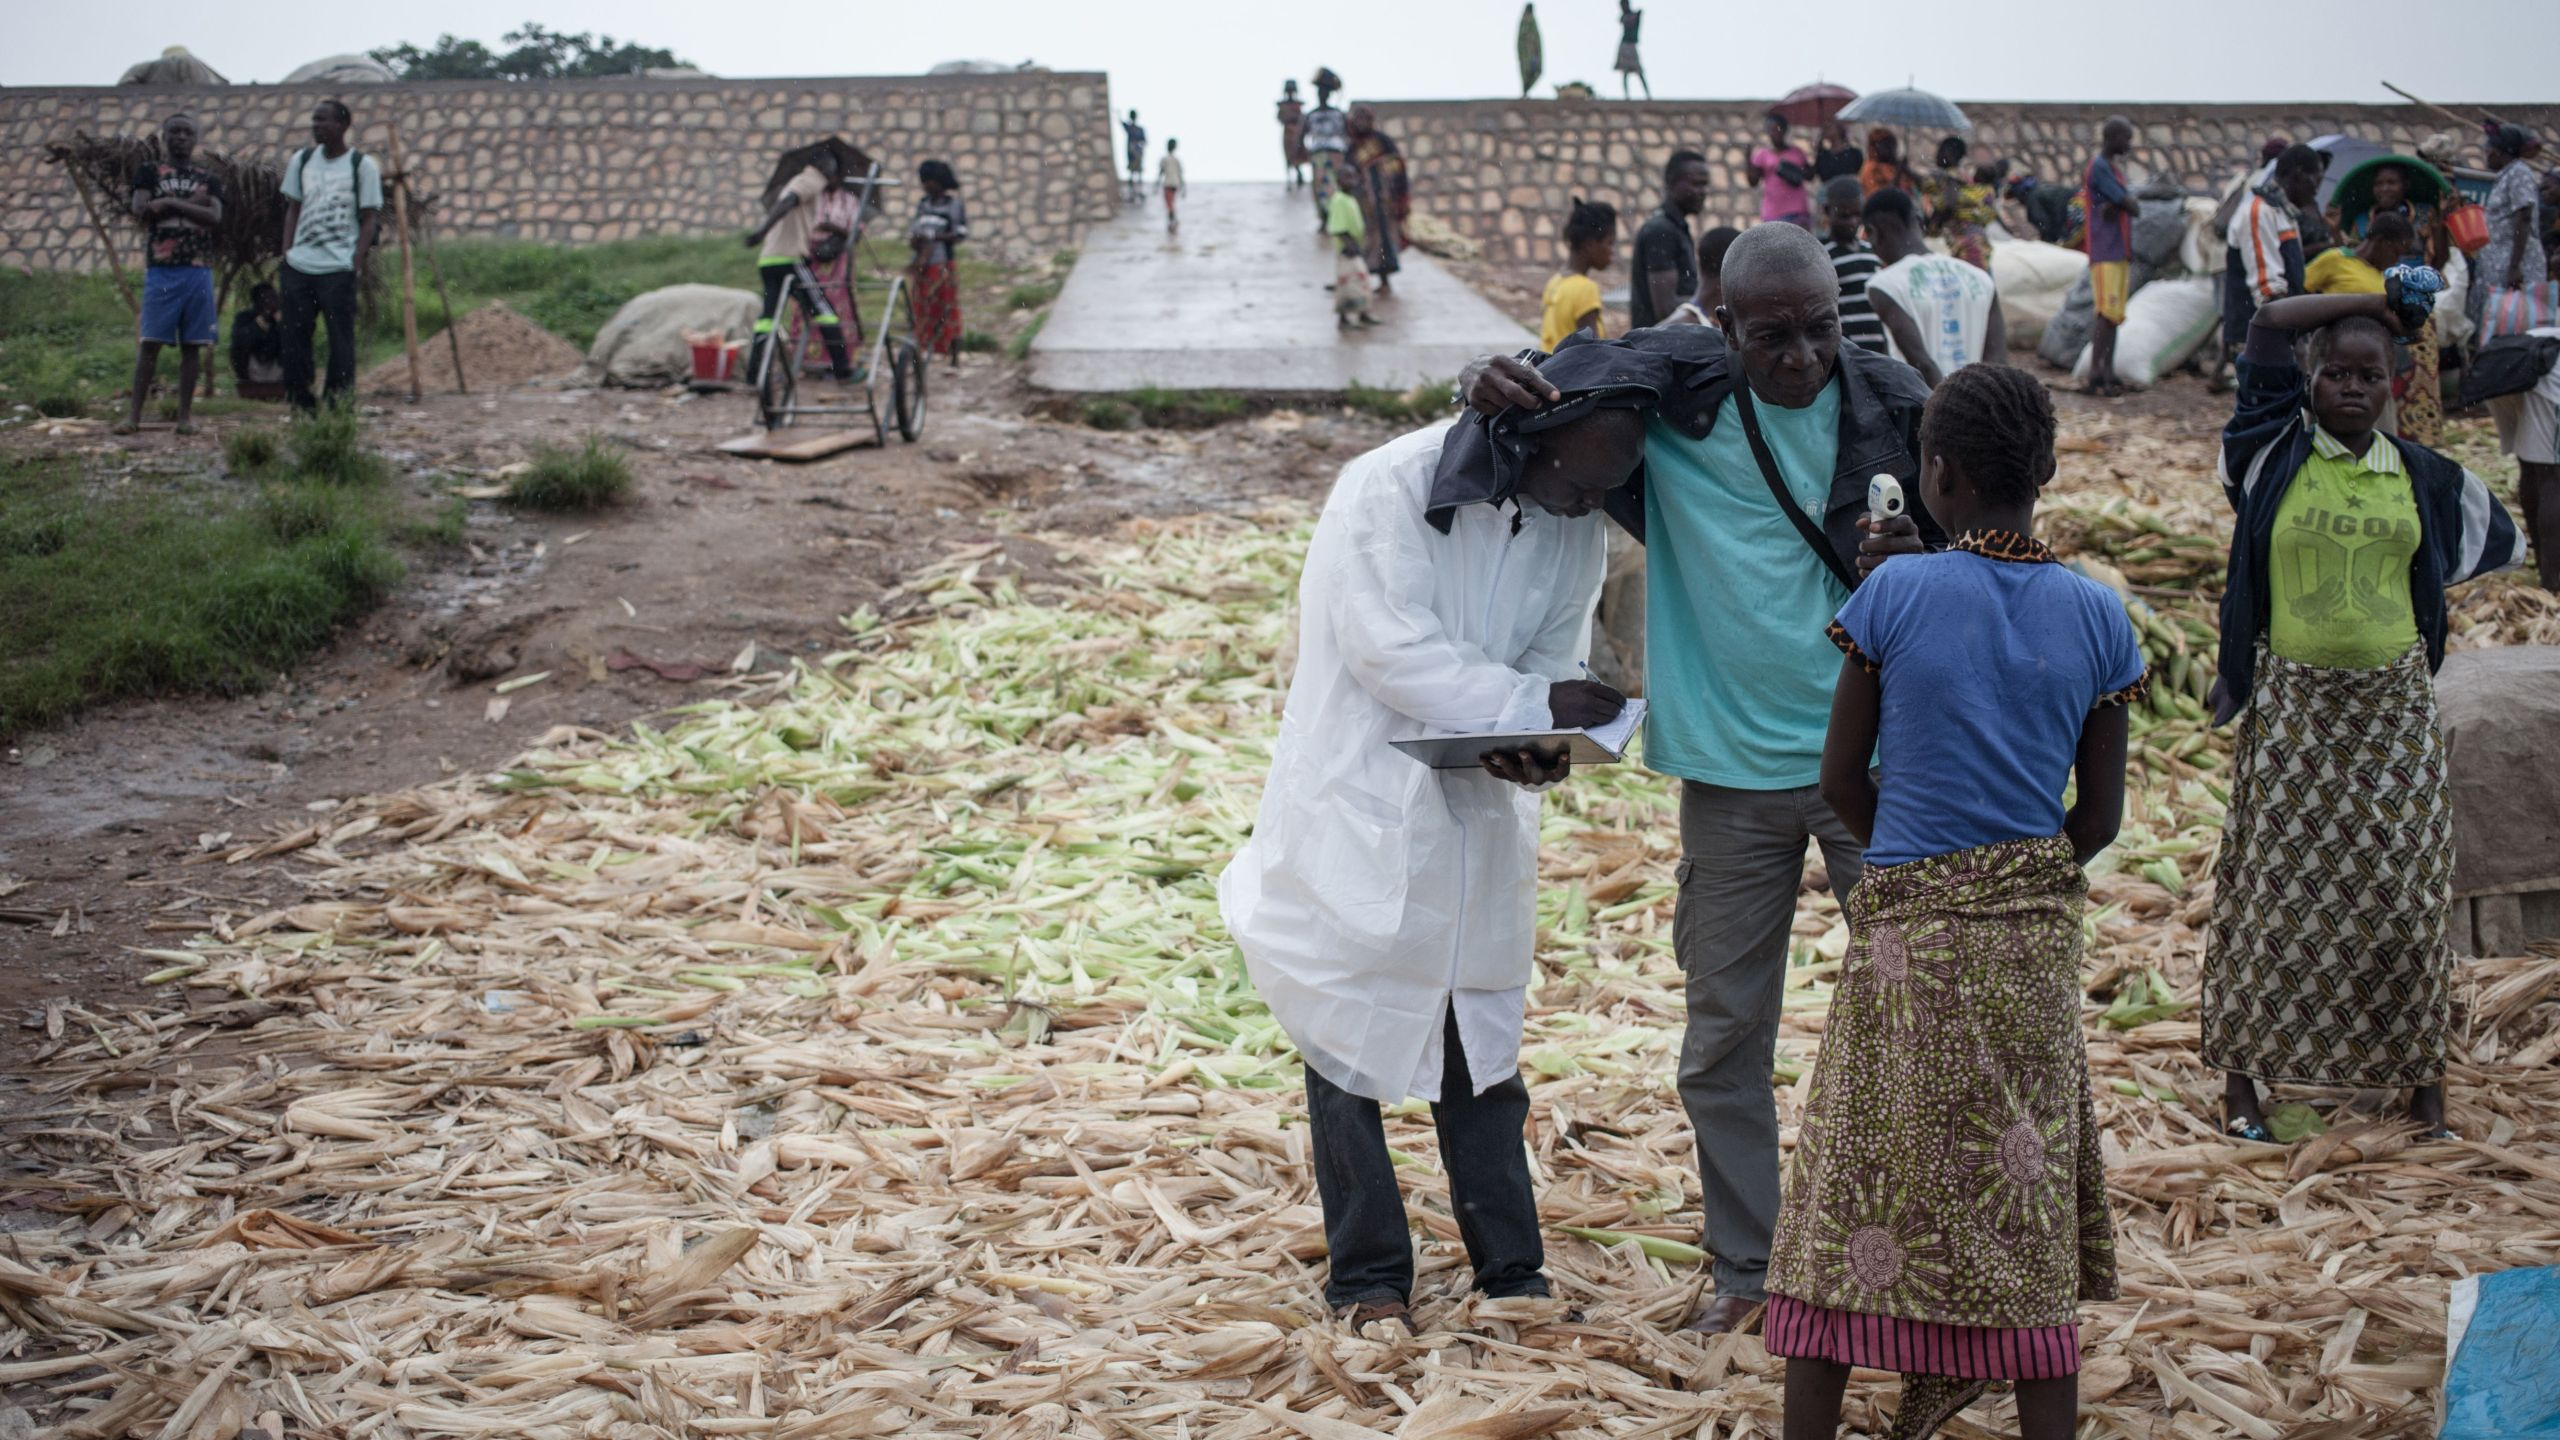 Health workers from the Ministry of Health monitor the temperature of a traveller from the Democratic Republic of Congo at each port in Bangui on June 3, 2018. (Credit: Florent Vergnes/AFP/Getty Images)